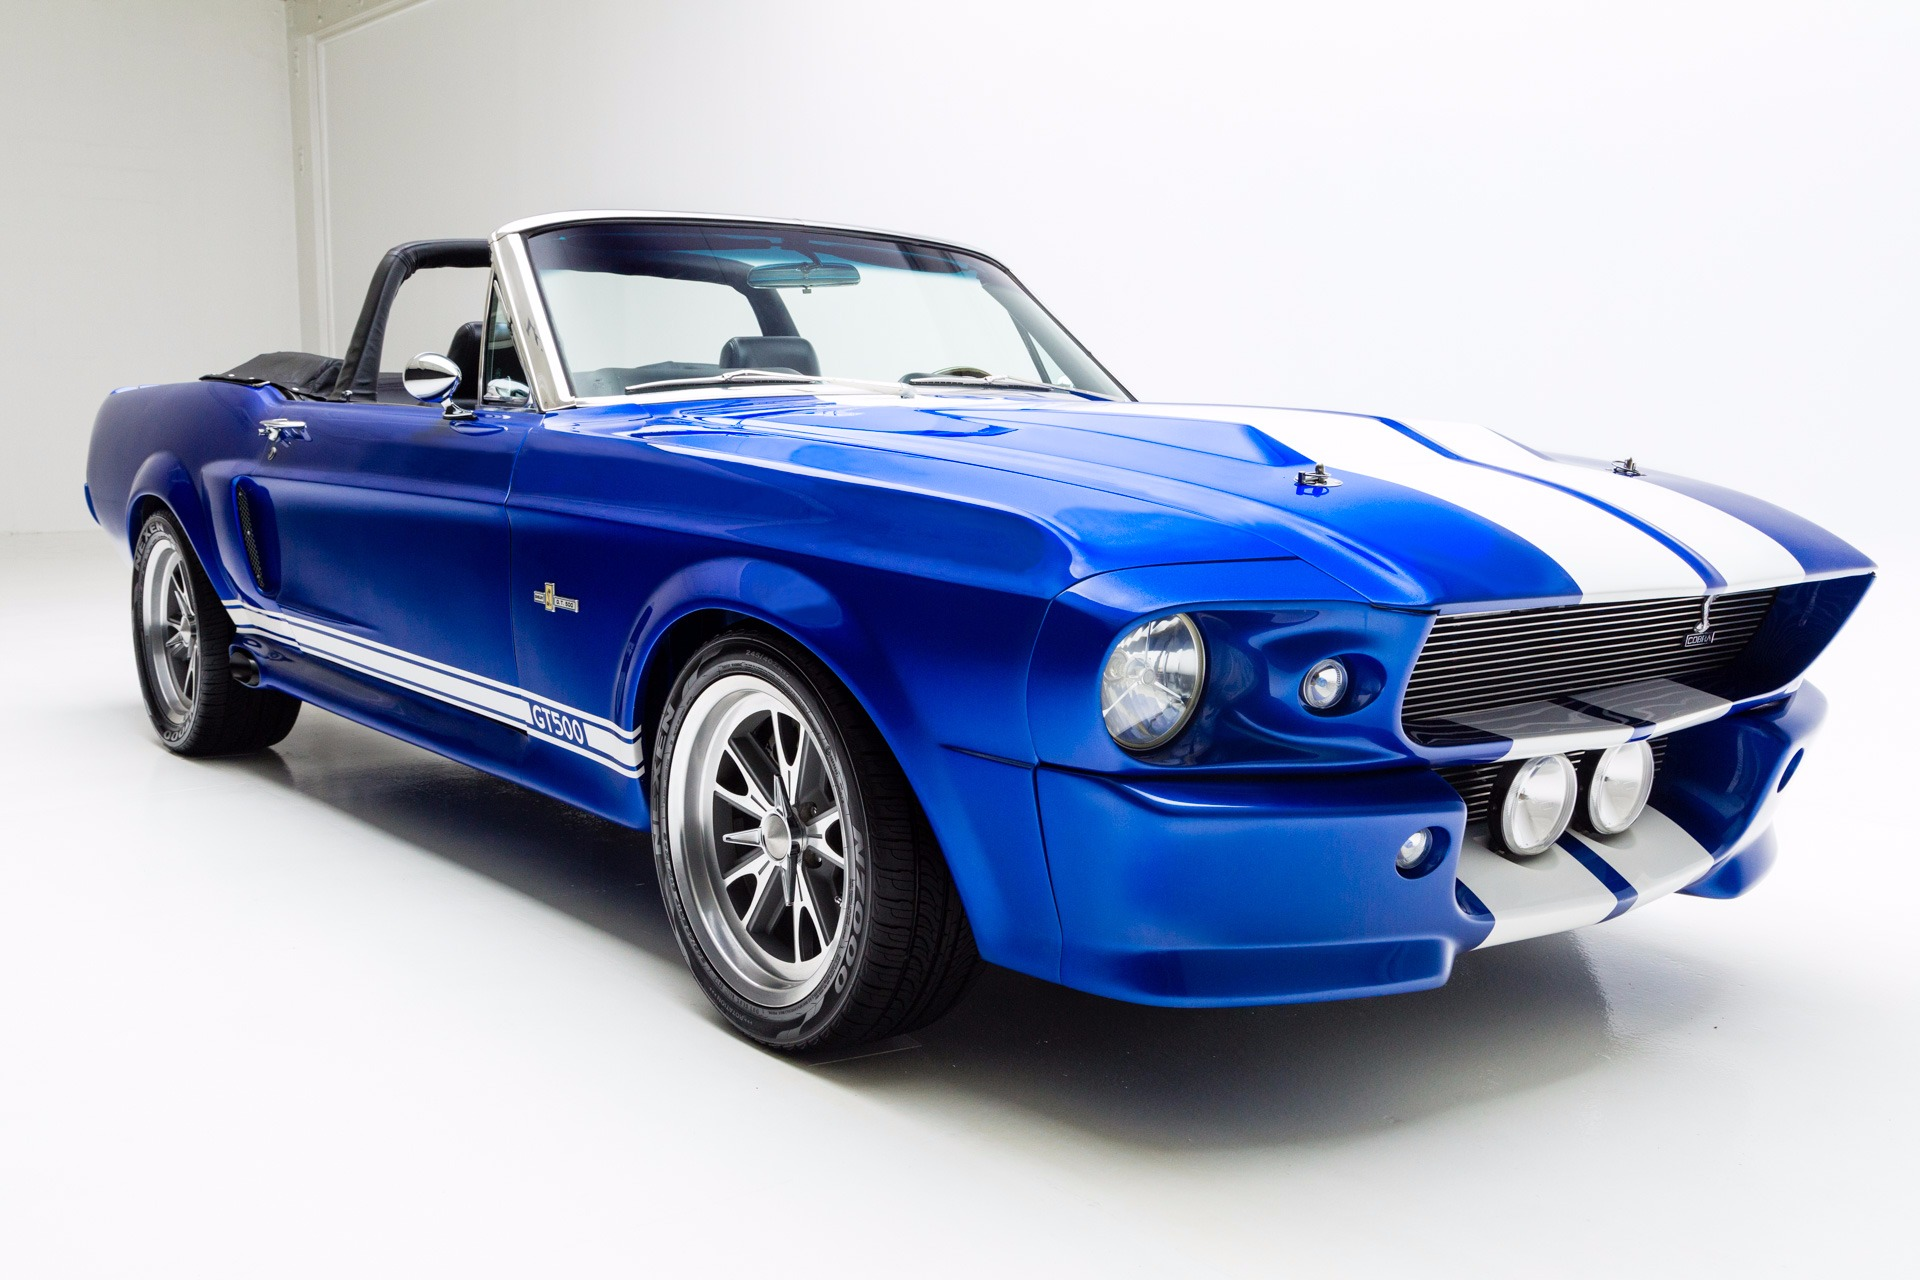 1967 Ford Mustang Convertible Eleanor 408/500